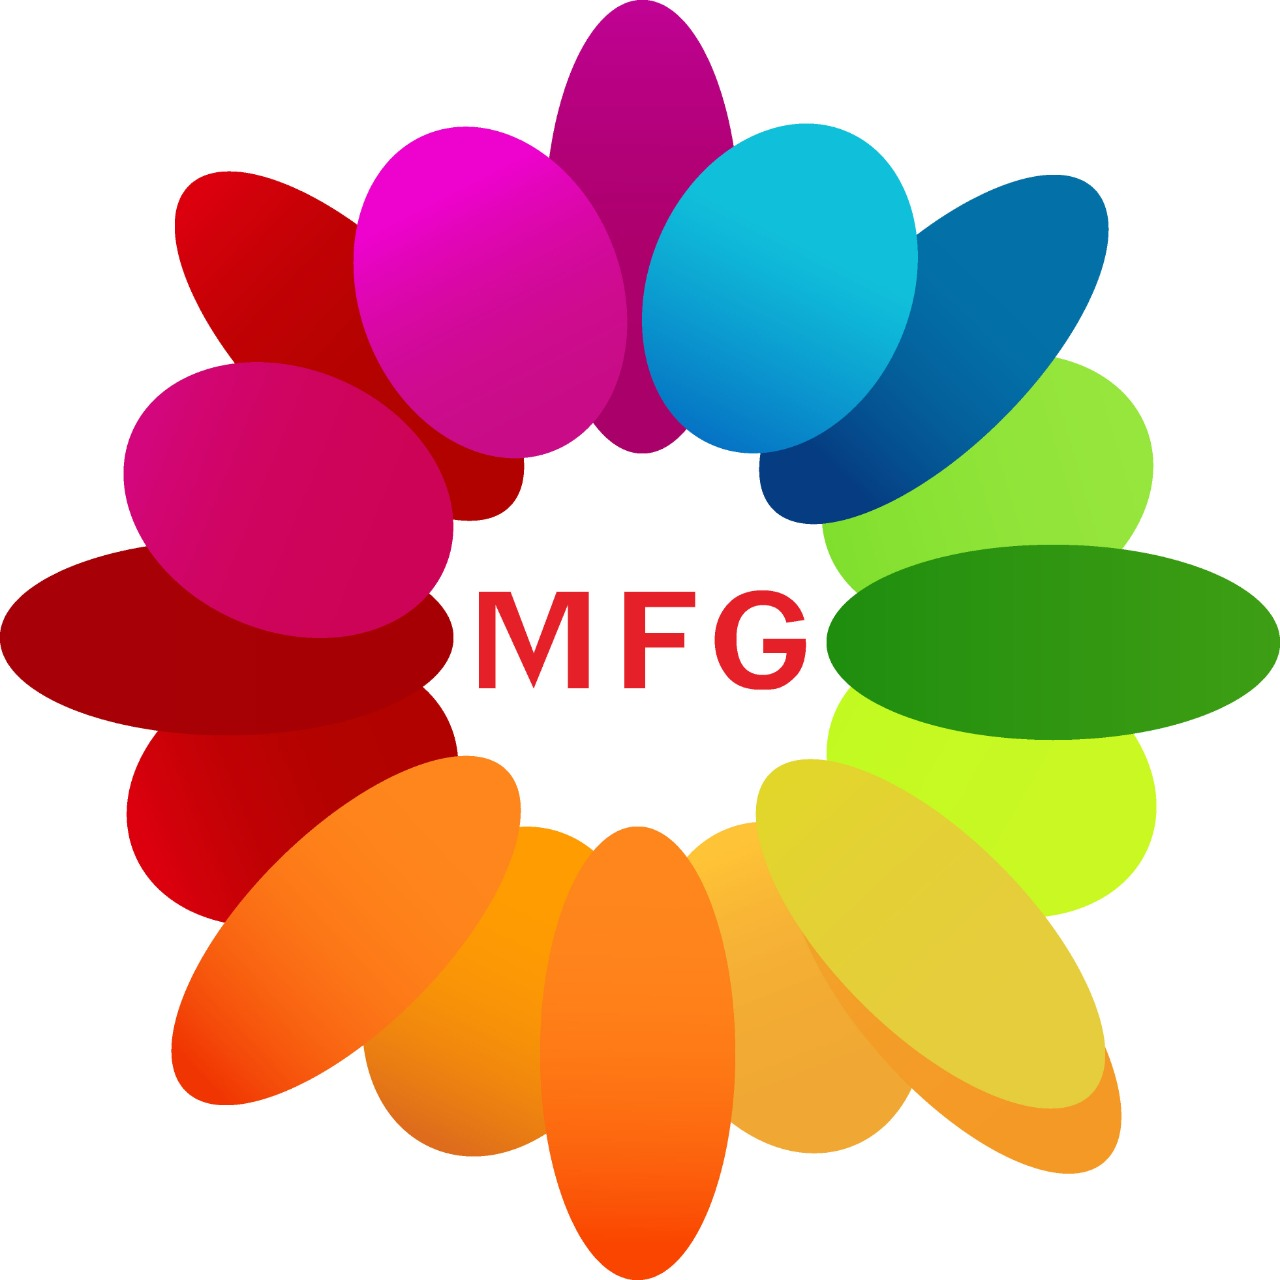 Love on the Moon, Beautiful Designer Arrangement in shape of moon can be the bestgift to wish your loved one at the beginning of the day